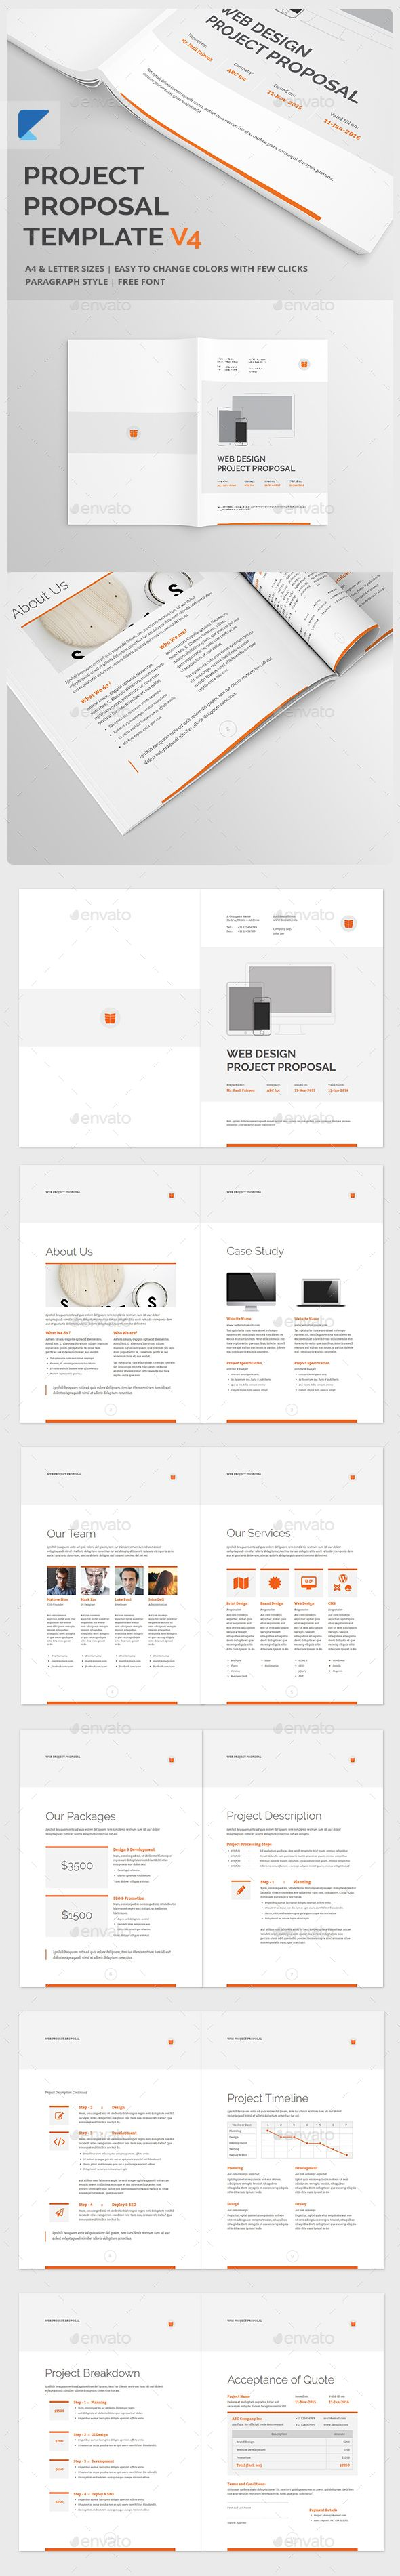 best images about web design quotation project proposal template v4